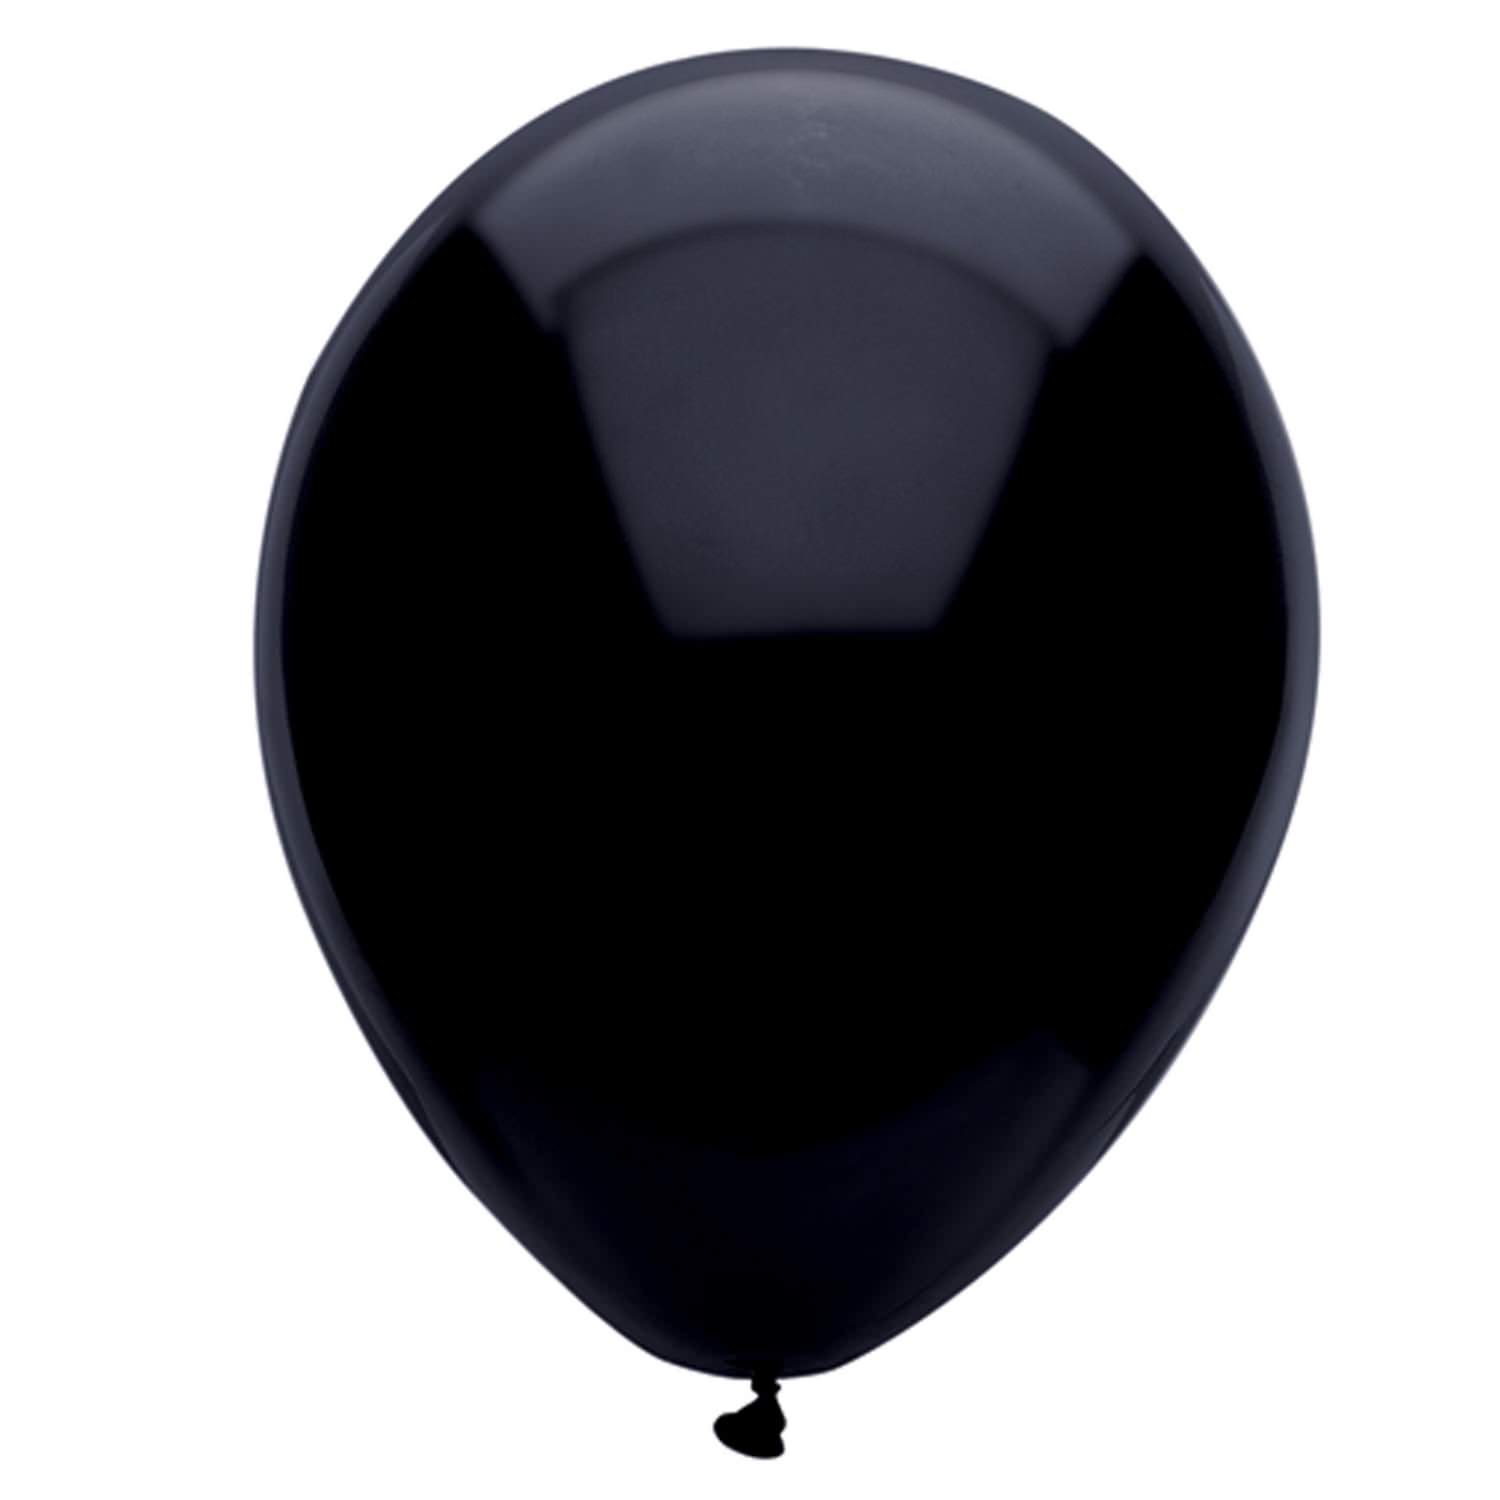 'the black balloon ' is principally It is based on the 1969 play of the same name by jack hibberd and was principally filmed on location in dimboola and white the black balloon black water.